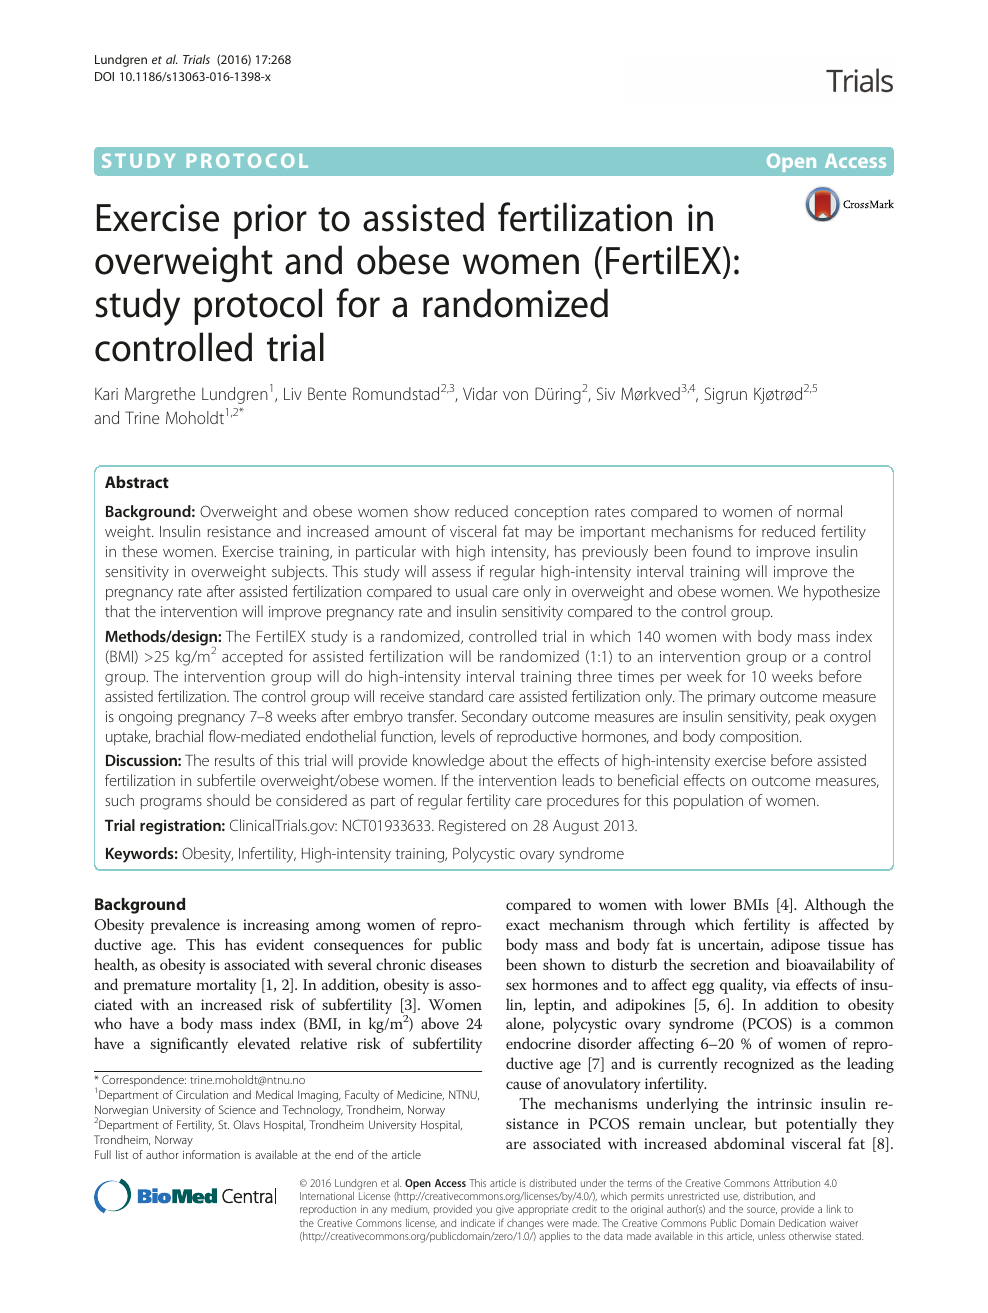 Exercise prior to assisted fertilization in overweight and